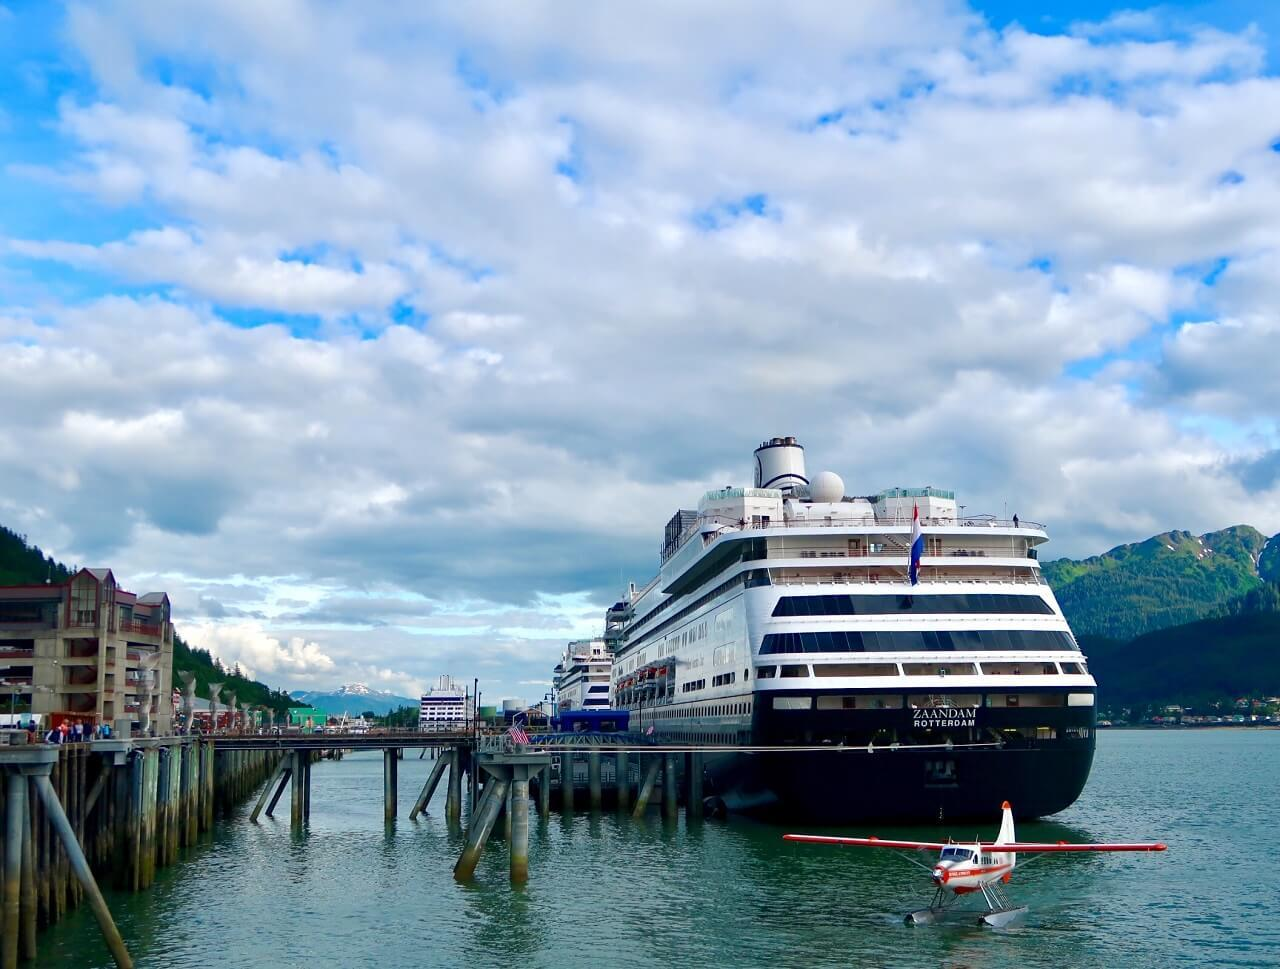 Things to do in Juneau: Downtown Waterfront